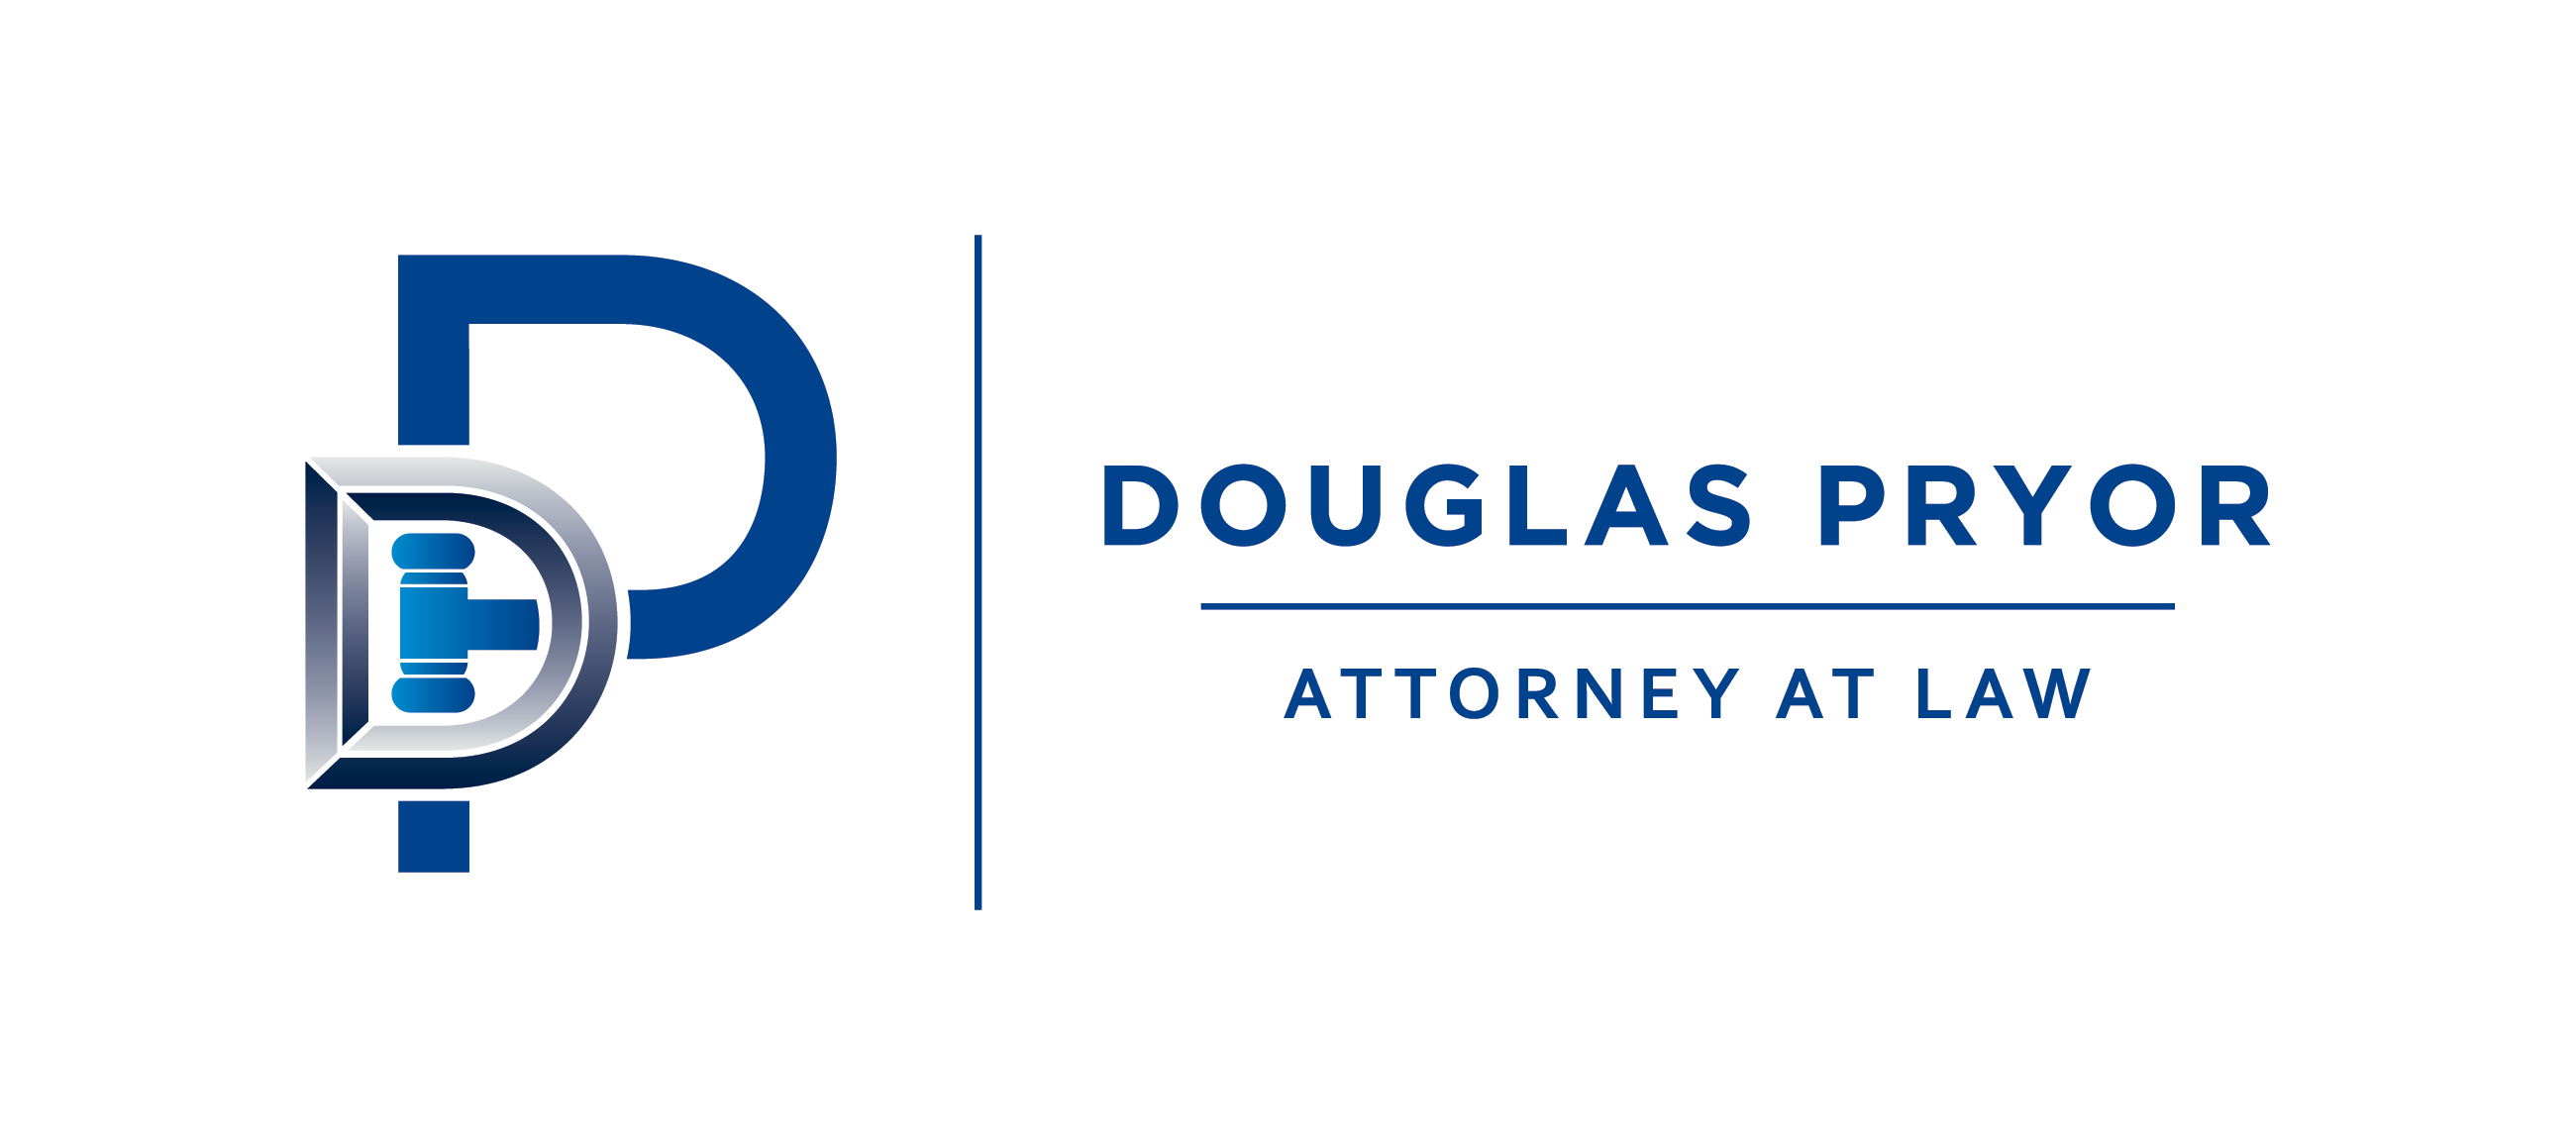 Law Office Of Douglas Pryor & Associates